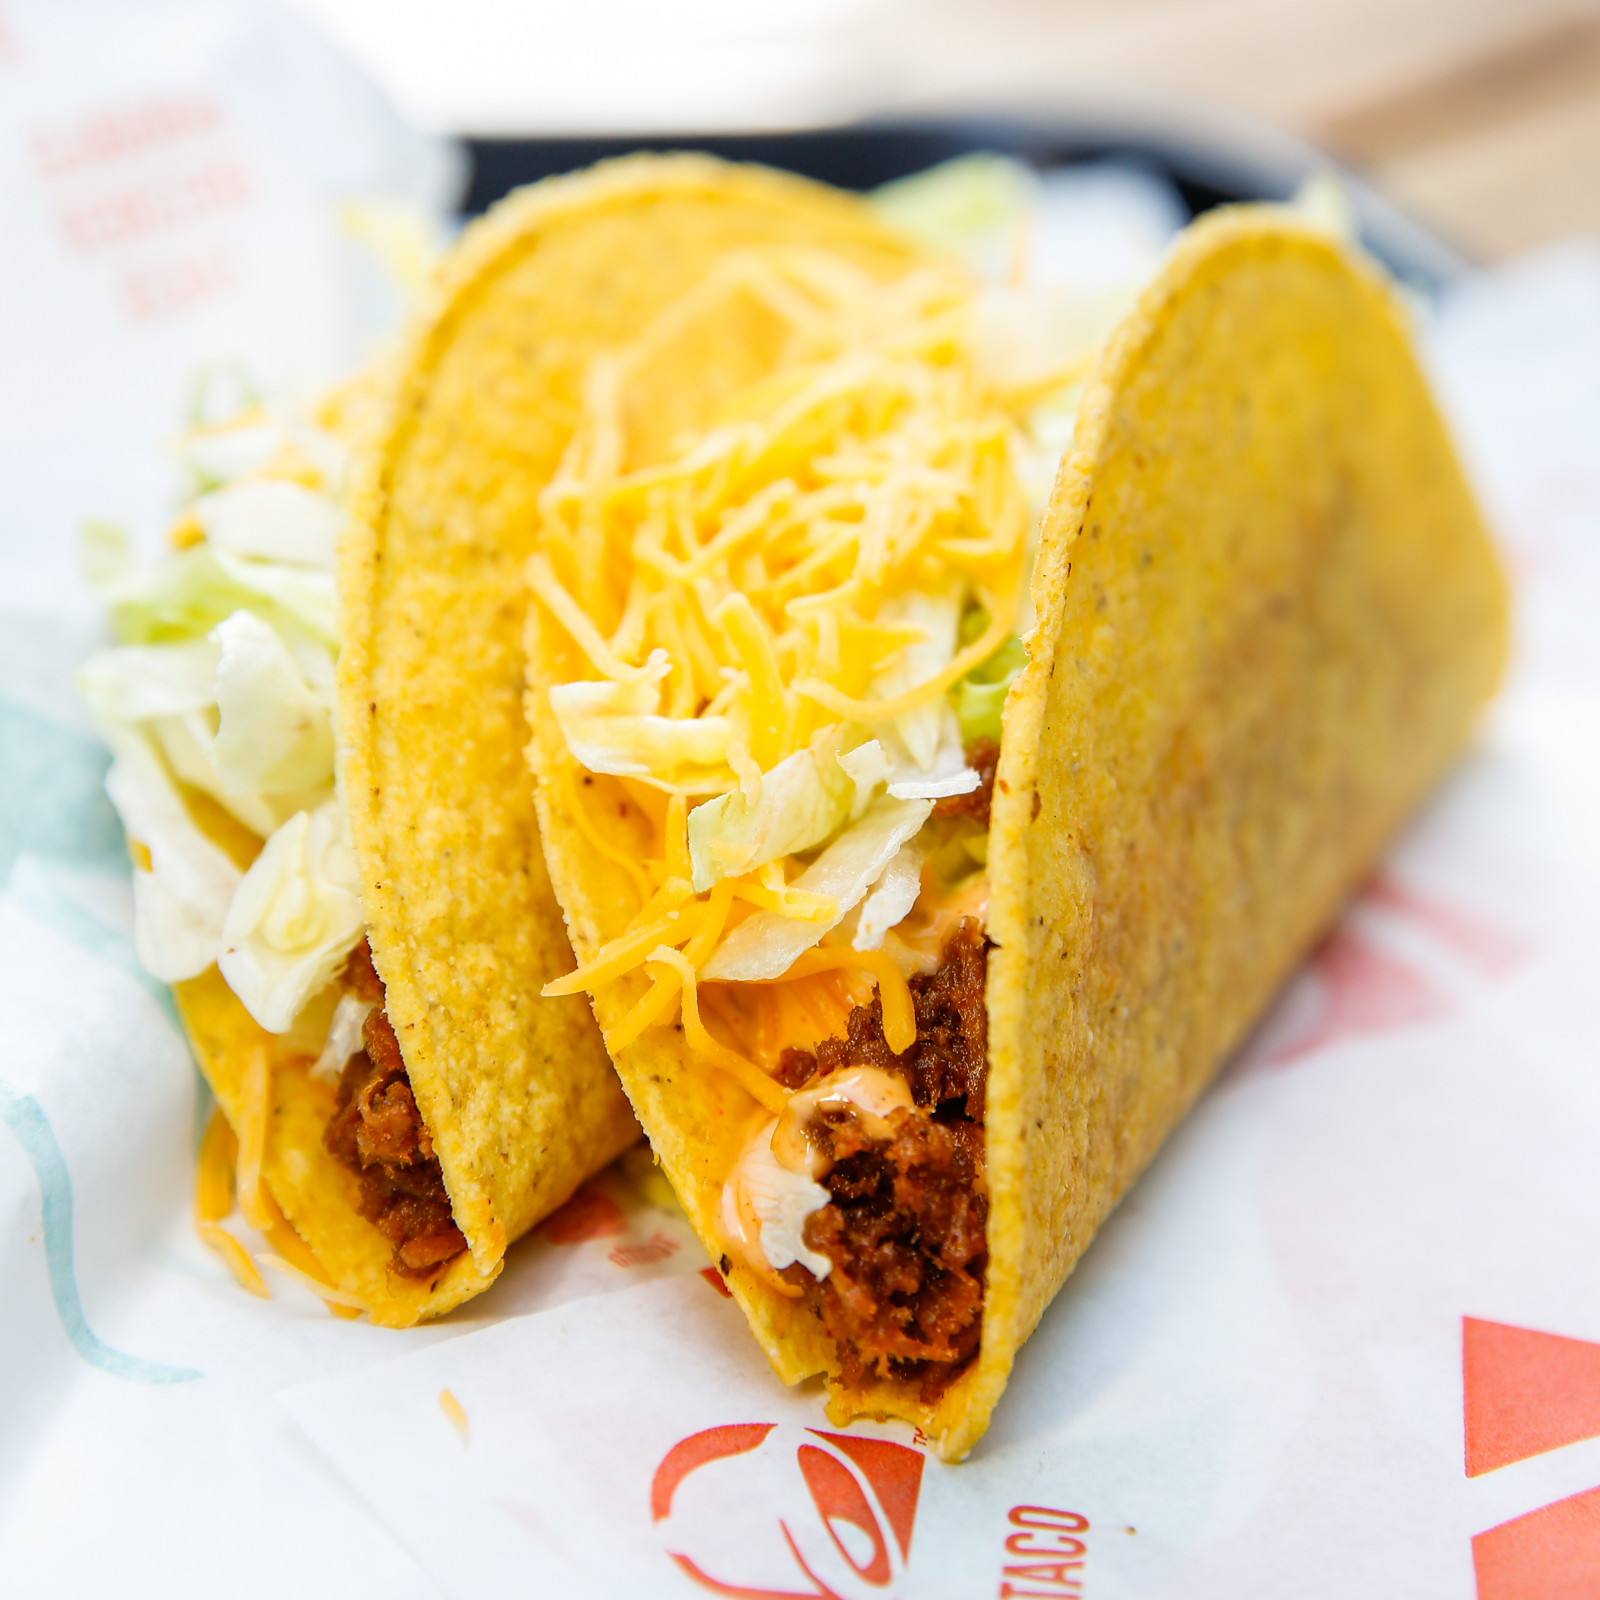 taco-bell-international-menu-oatageous-taco-XL-BLOG1219.jpg